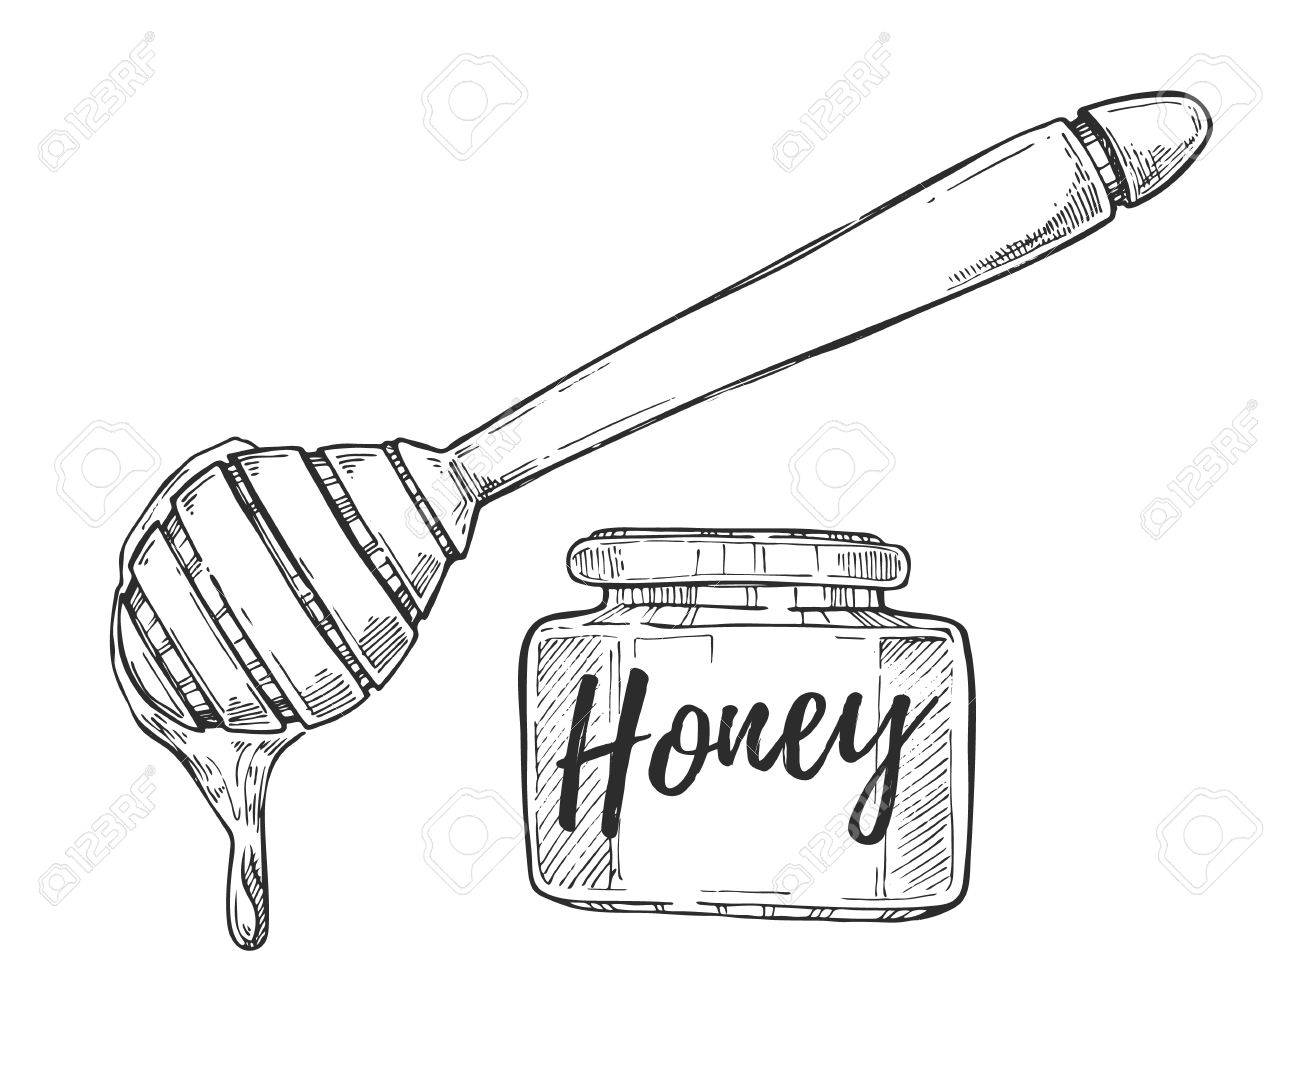 1300x1066 Honey Jar And Stick Freehand Pencil Drawing Isolated On White